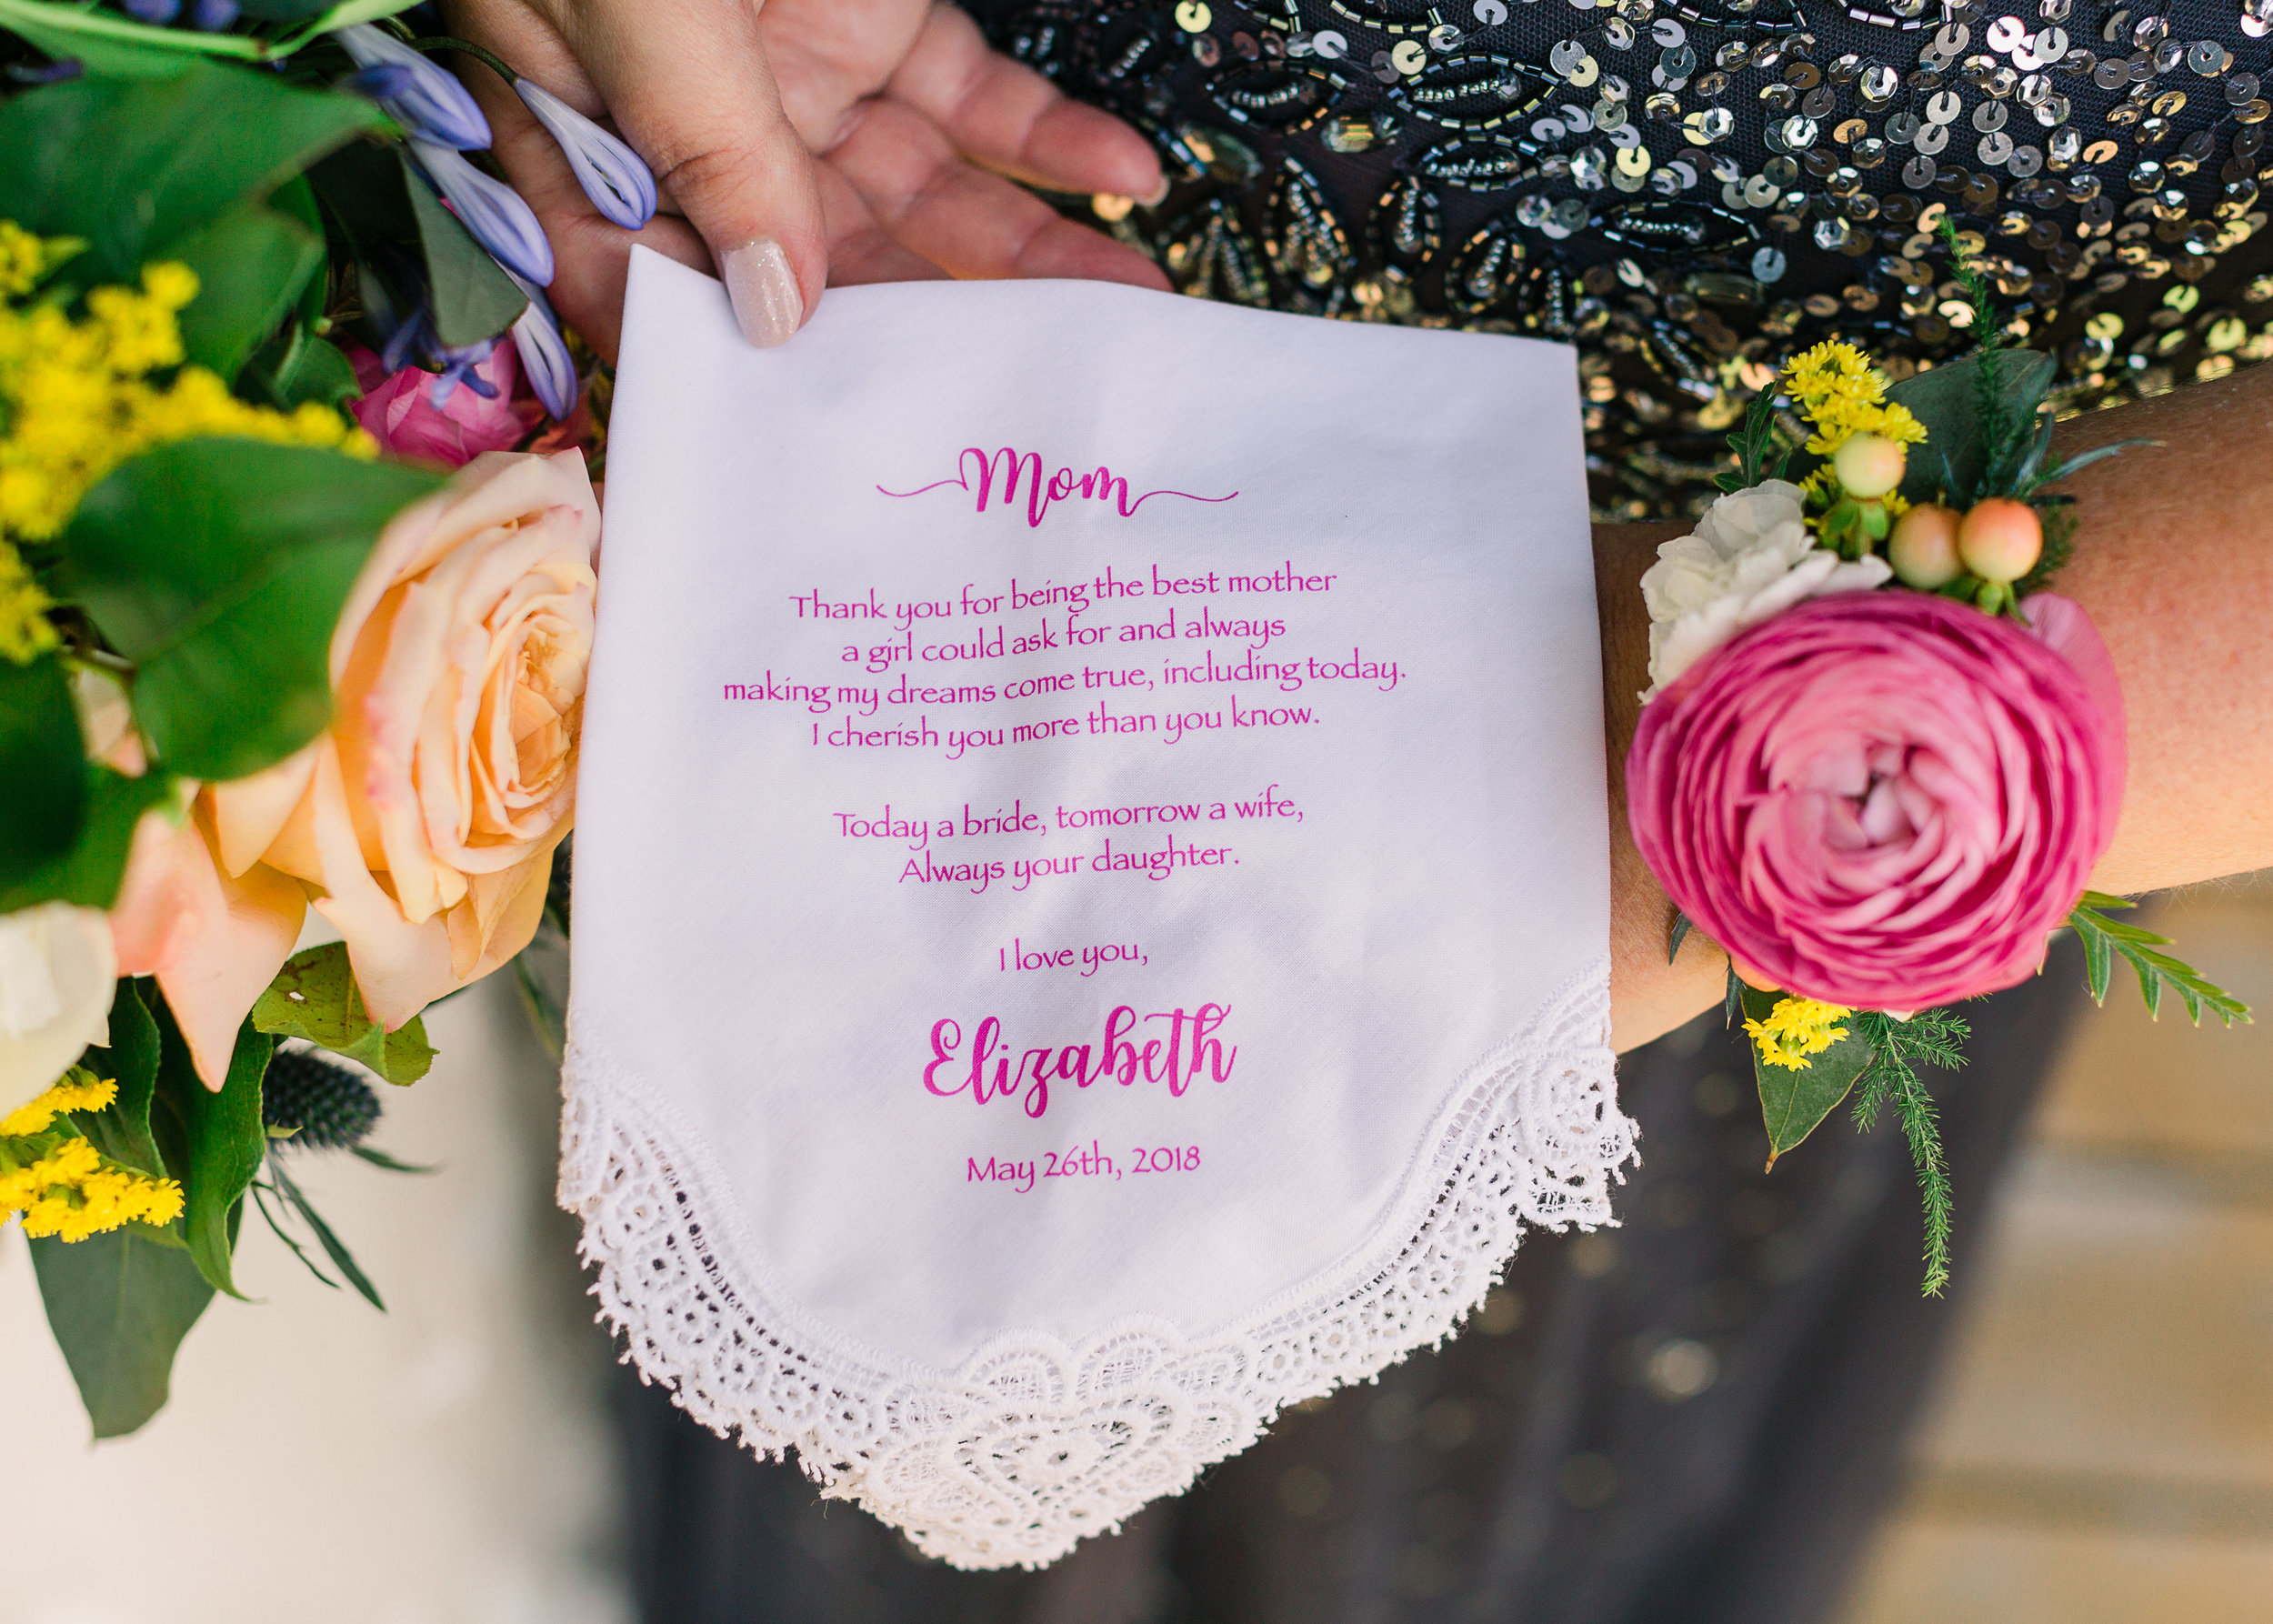 The bridesmaids carried bouquets of Shimmer roses, white stock and hypericum berry.  The mothers corsages were pink ranunculus and textural filler on gold cuff bracelets.